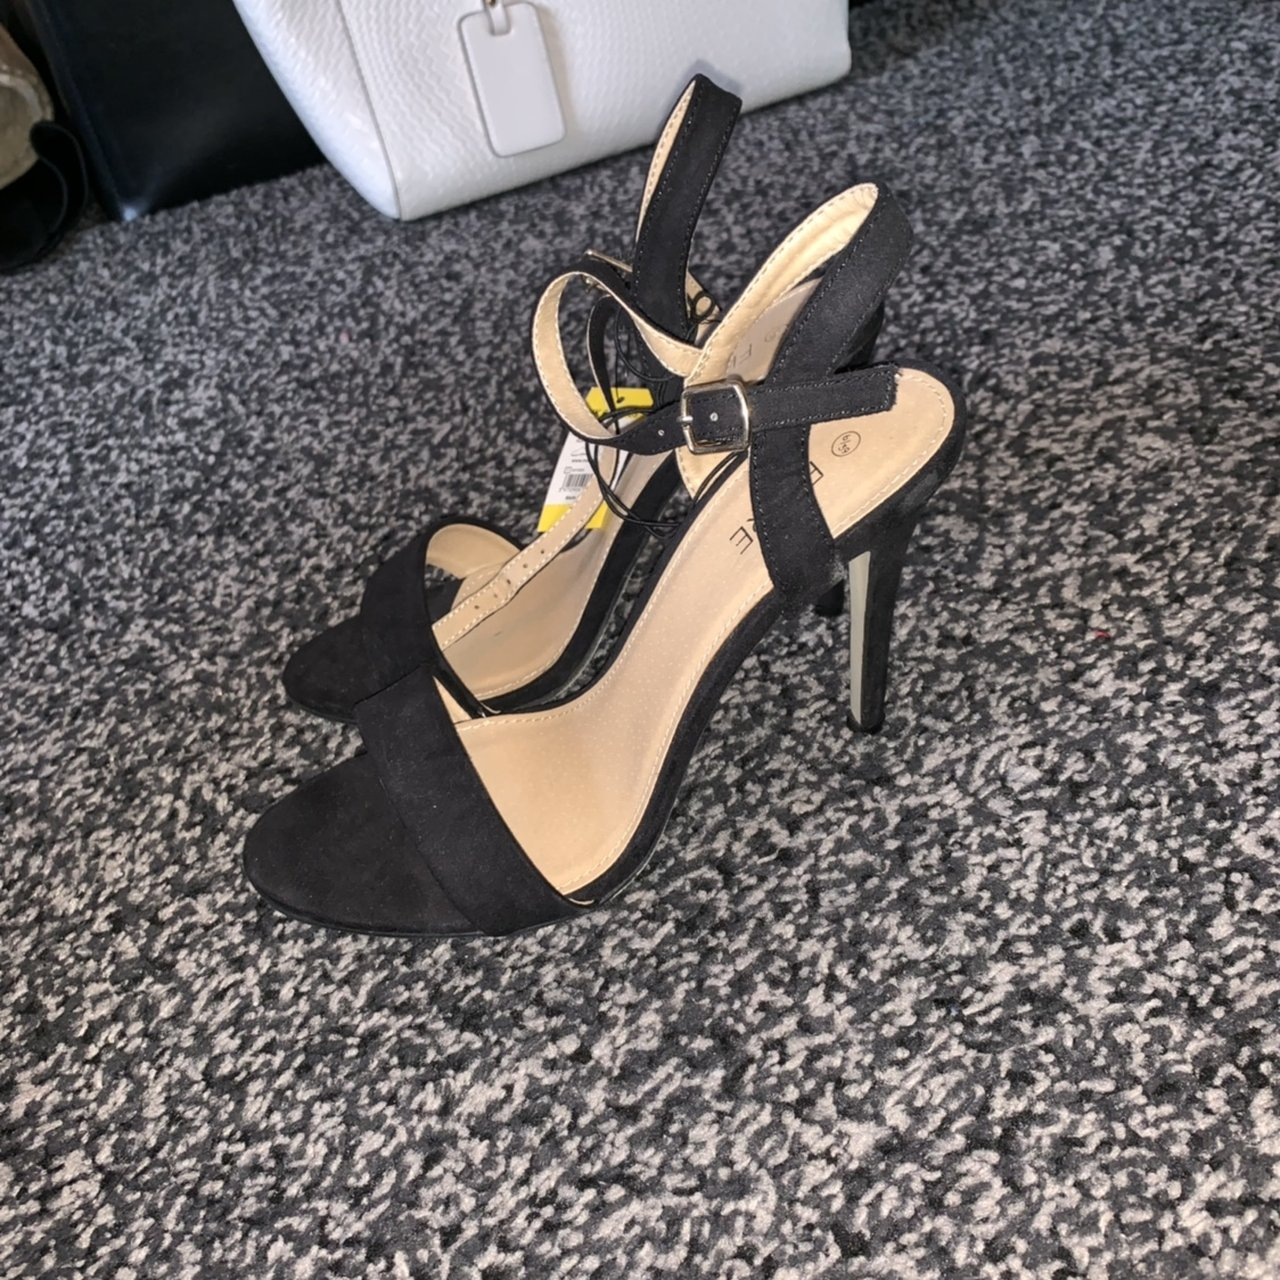 464c0a08901 Barely there heels never worn - Depop